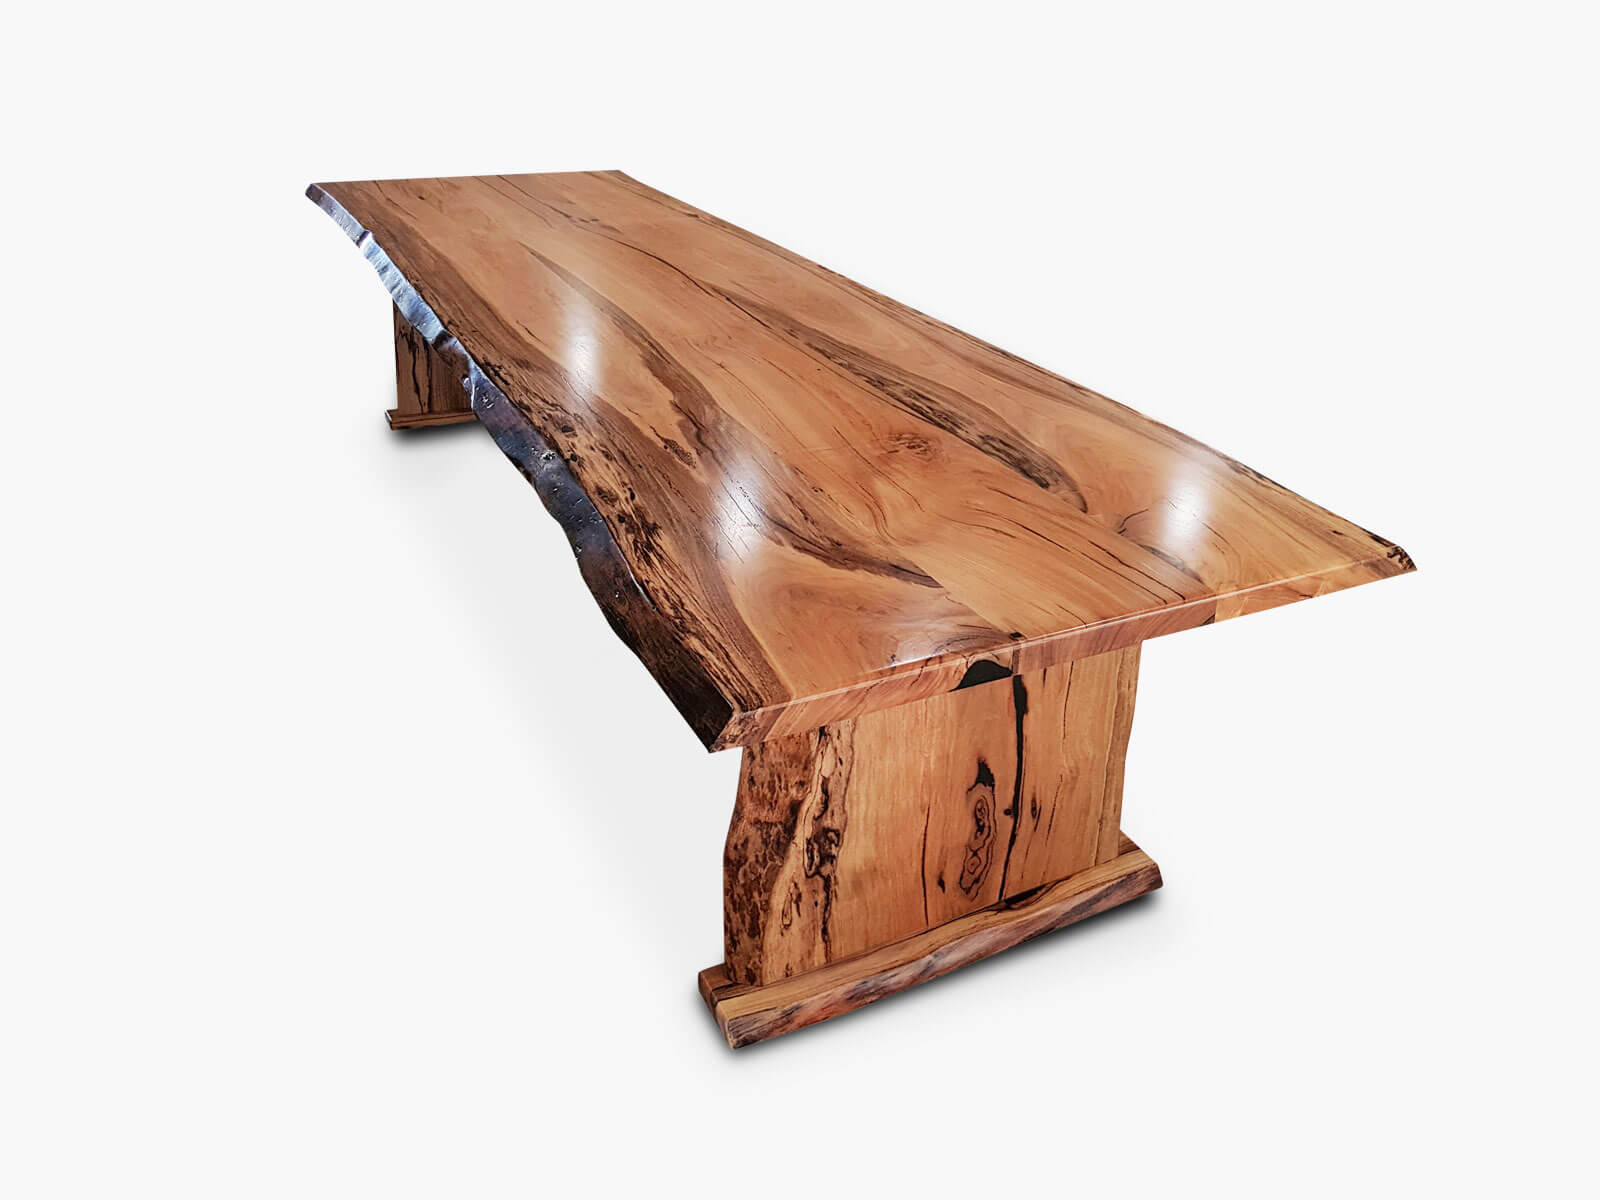 Raw Timber Furniture Live Edge Dining Tables Natural Edge Dining Tables